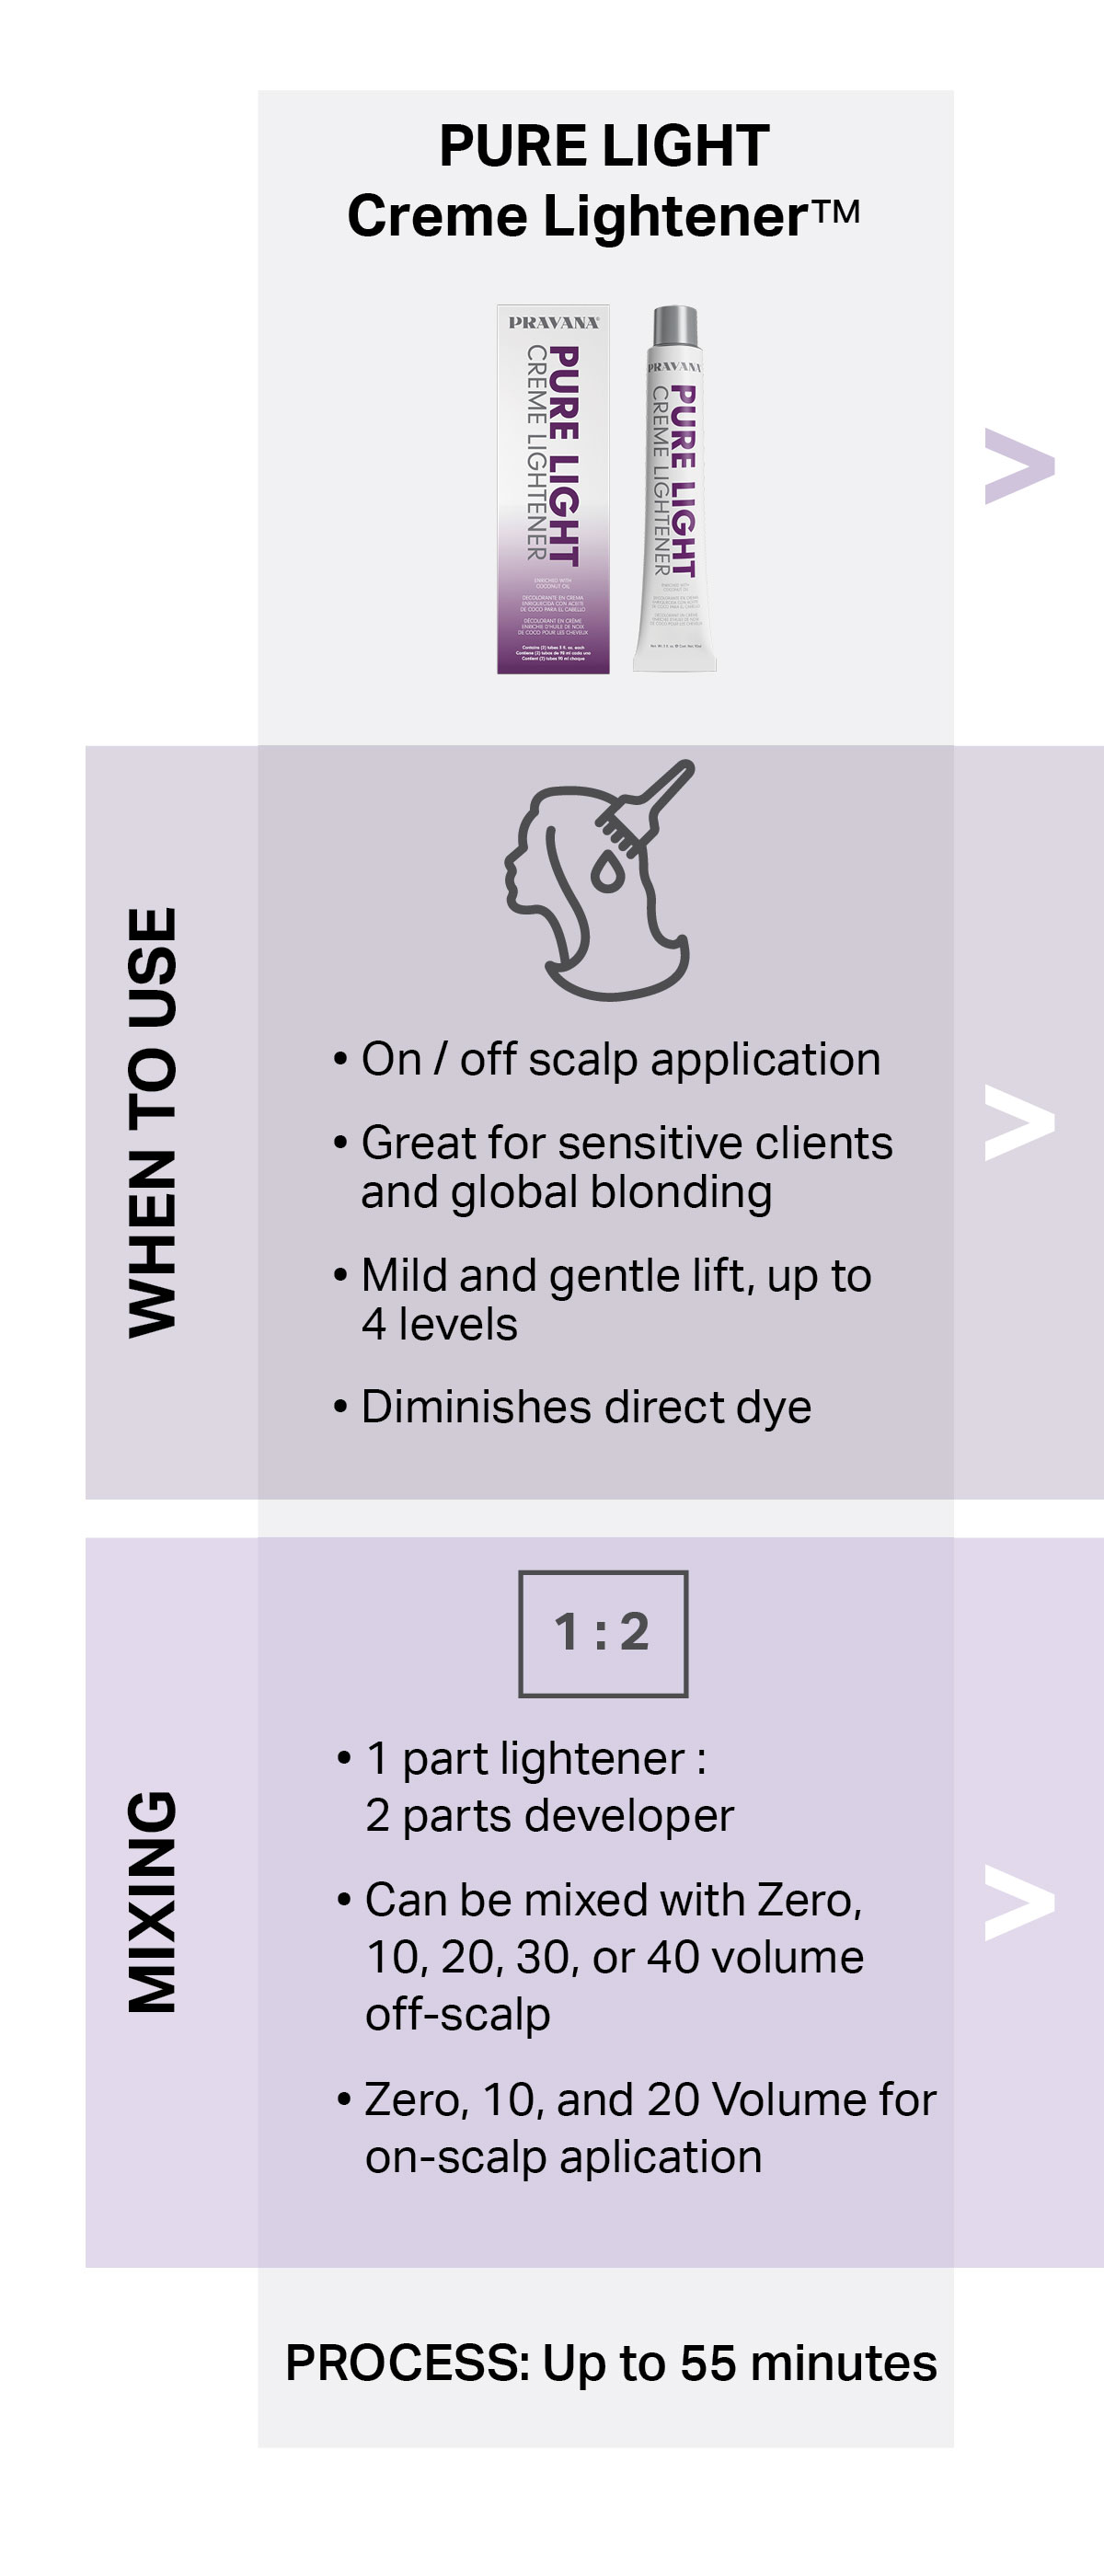 pure light creme lightener. When to use: on/off scalp application; great for sensitive clients and global bonding; mild and gentle lift, up to 4 levels; diminishes direct dye. Mixing: 1 to 2; 1 part lightener to 2 parts developer;  can be mixed with zero, 10, 20, 30,  or 40 volume off-scalp; zero,  10 and 20. volume for on-scalp application. Process: up to 55 minutes